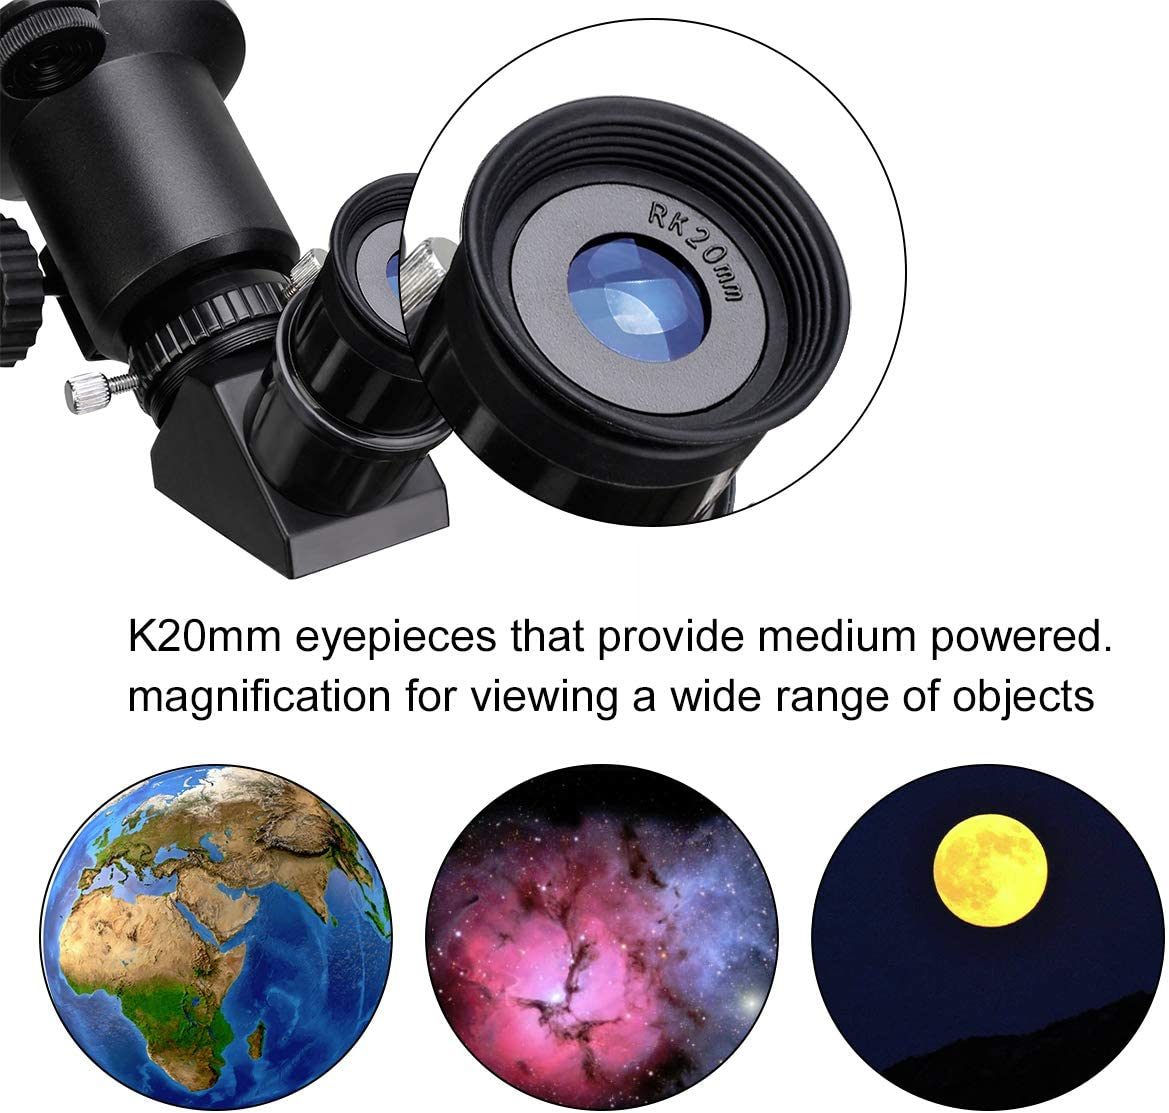 SVBONY SV501 Telescope for Kids Adults Beginners 70mm Fully Coated Travel scope for Astronomy Beginners with Adjustable Tripod and Finder Scope